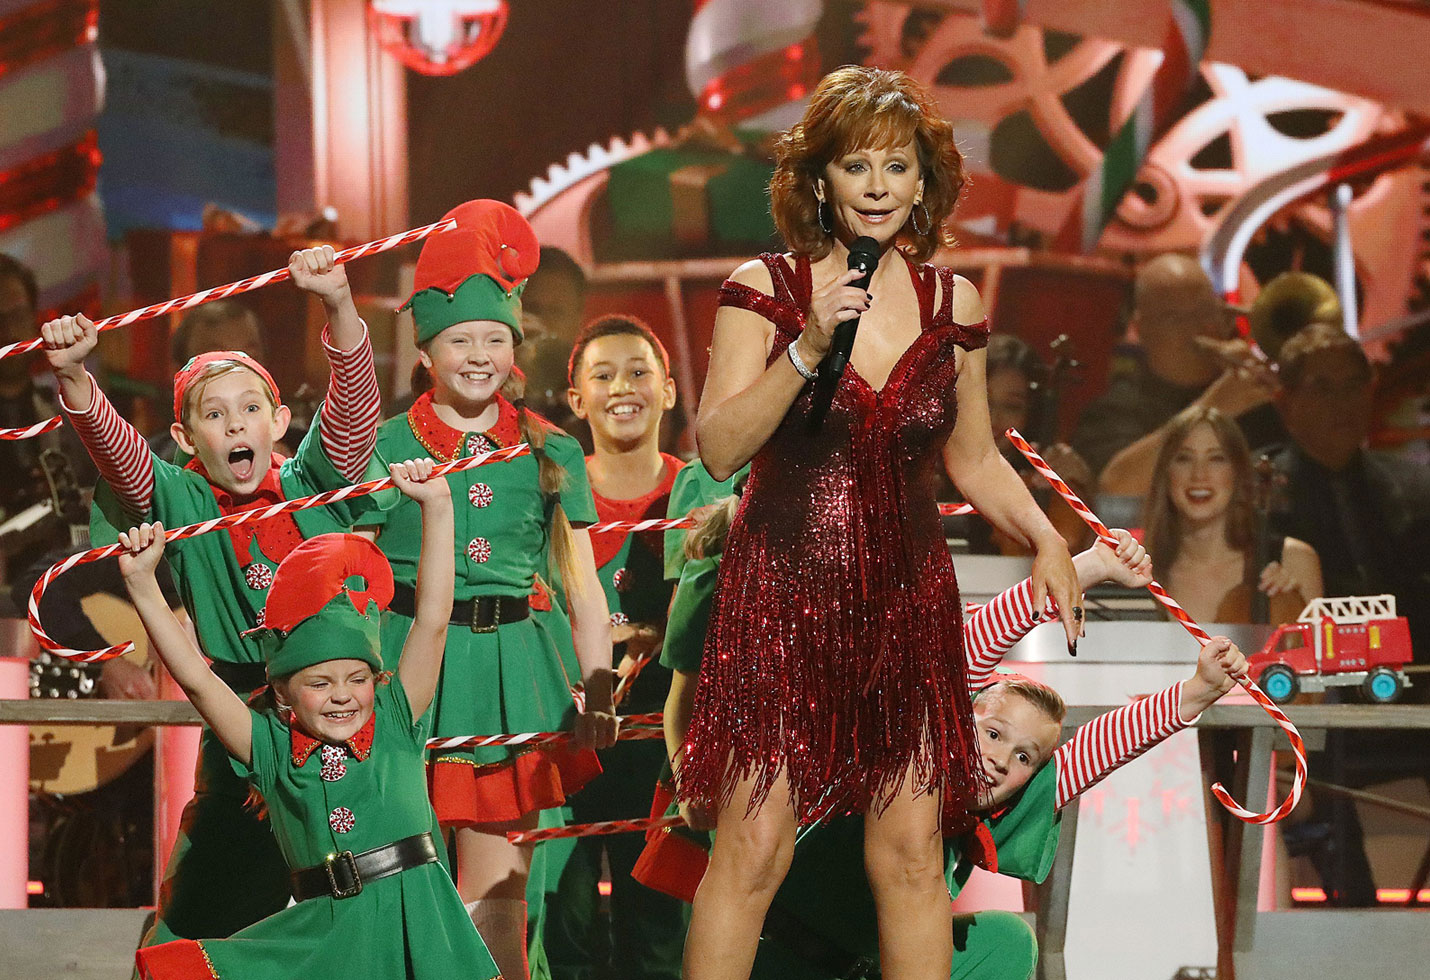 Cma Country Christmas.The 10 Best Moments From Cma Country Christmas 2018